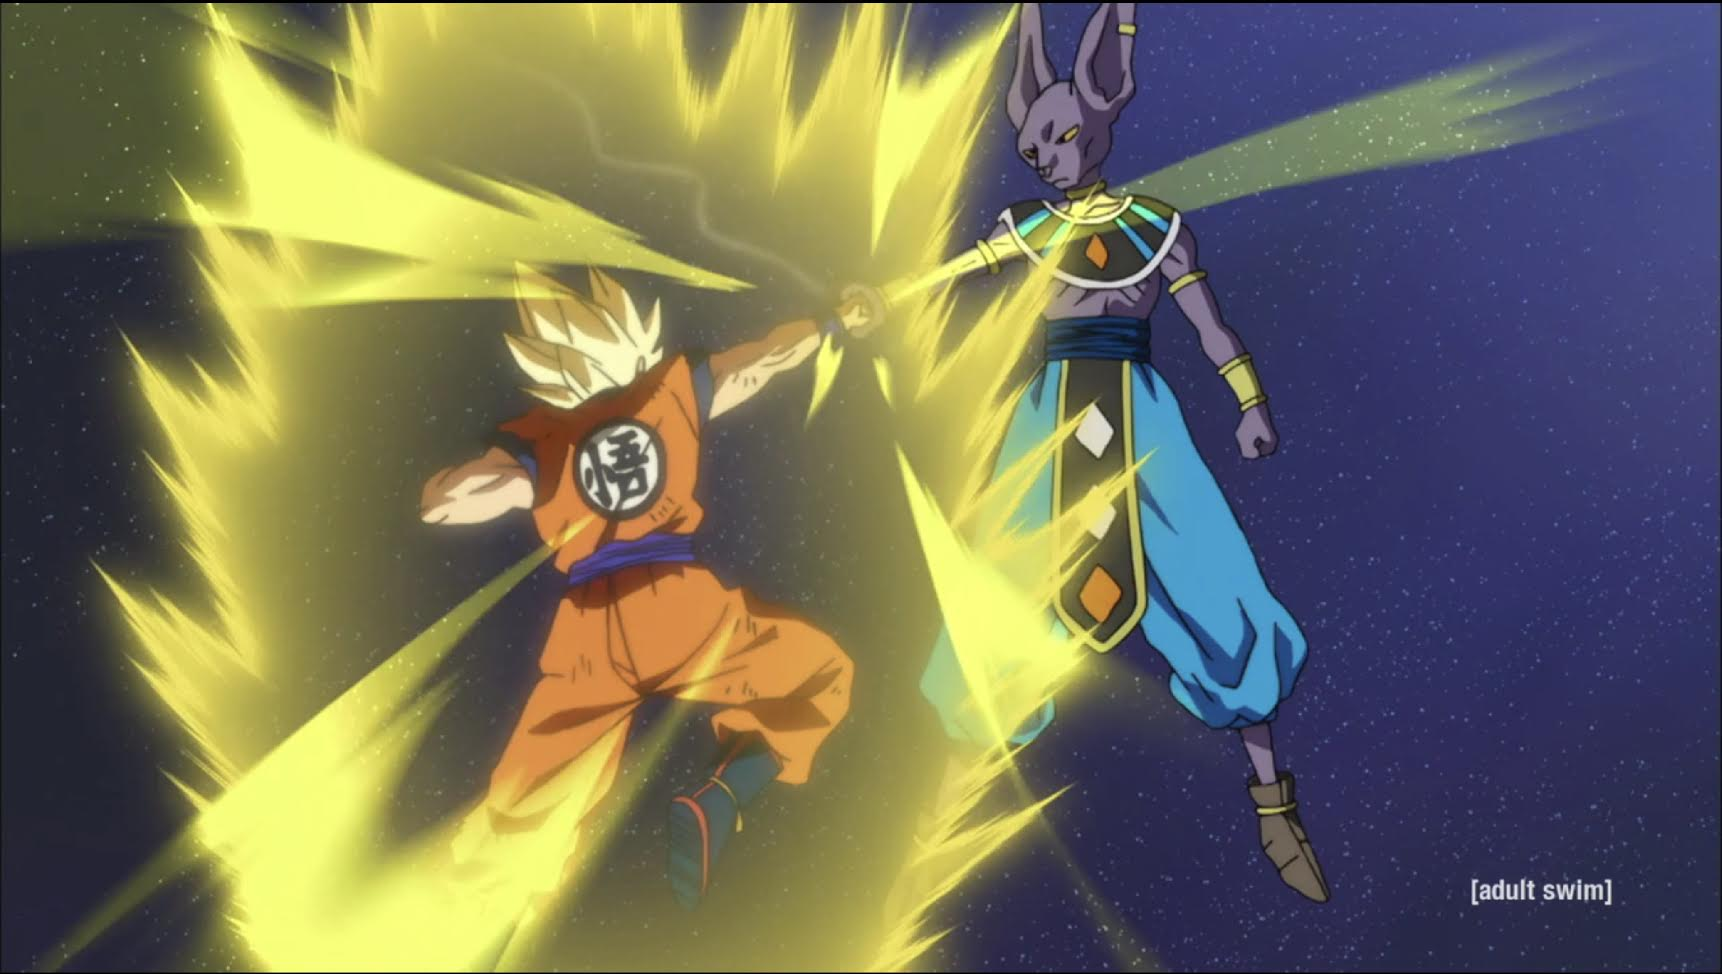 """Dragon Ball Super: Episode 14 """"This is All the Power I've Got! A Settlement Between Gods"""" Review"""